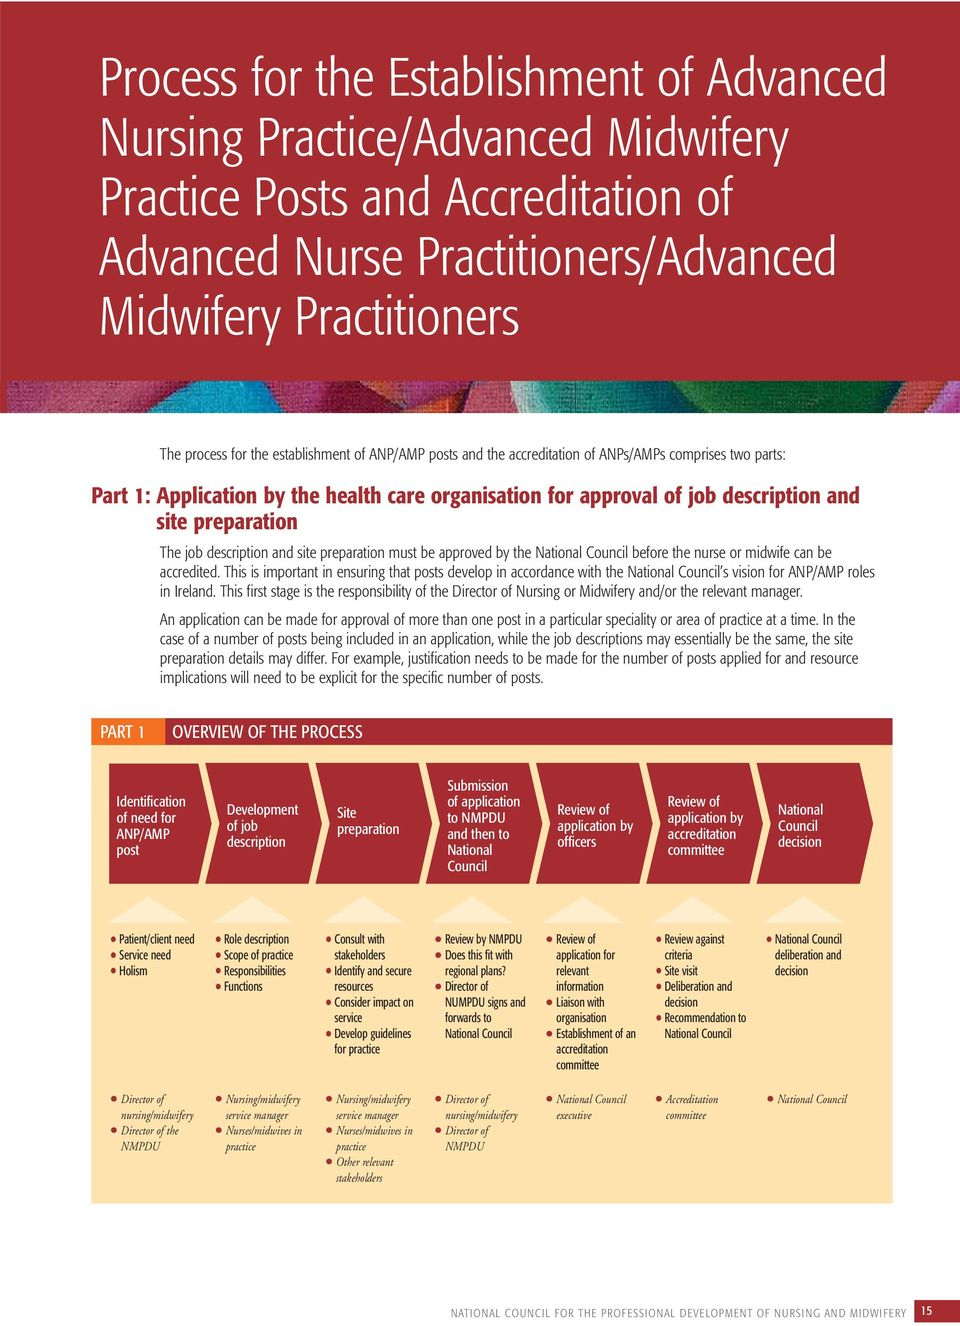 description and site preparation must be approved by the National Council before the nurse or midwife can be accredited.